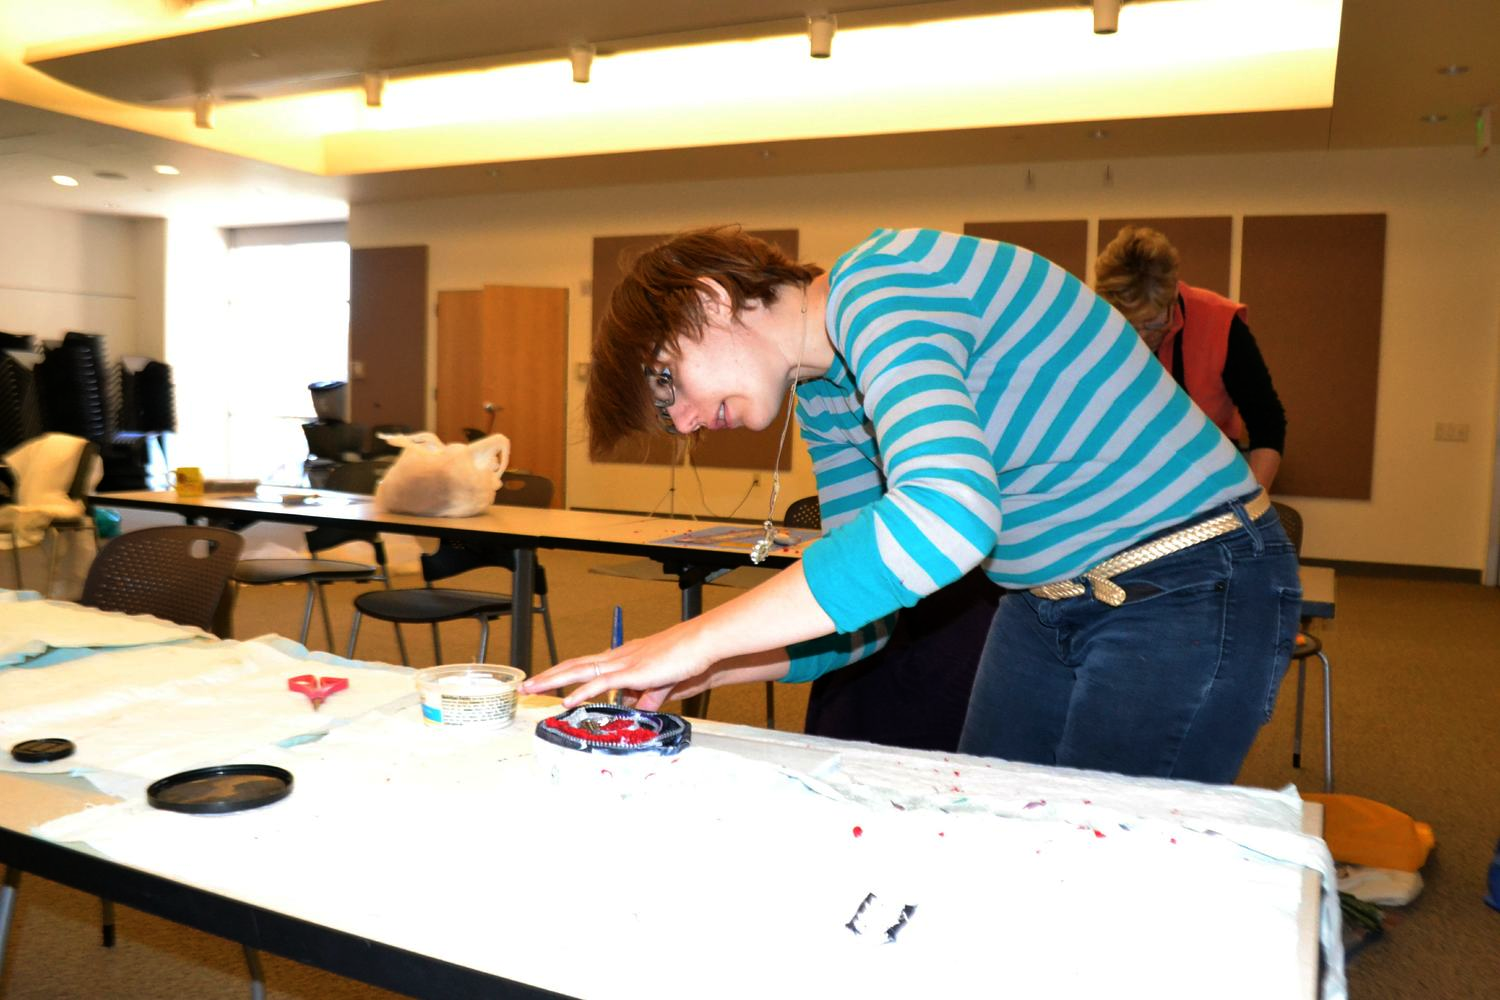 And of course no workshop photo is complete without a photo of my mouth hanging open in concentration.